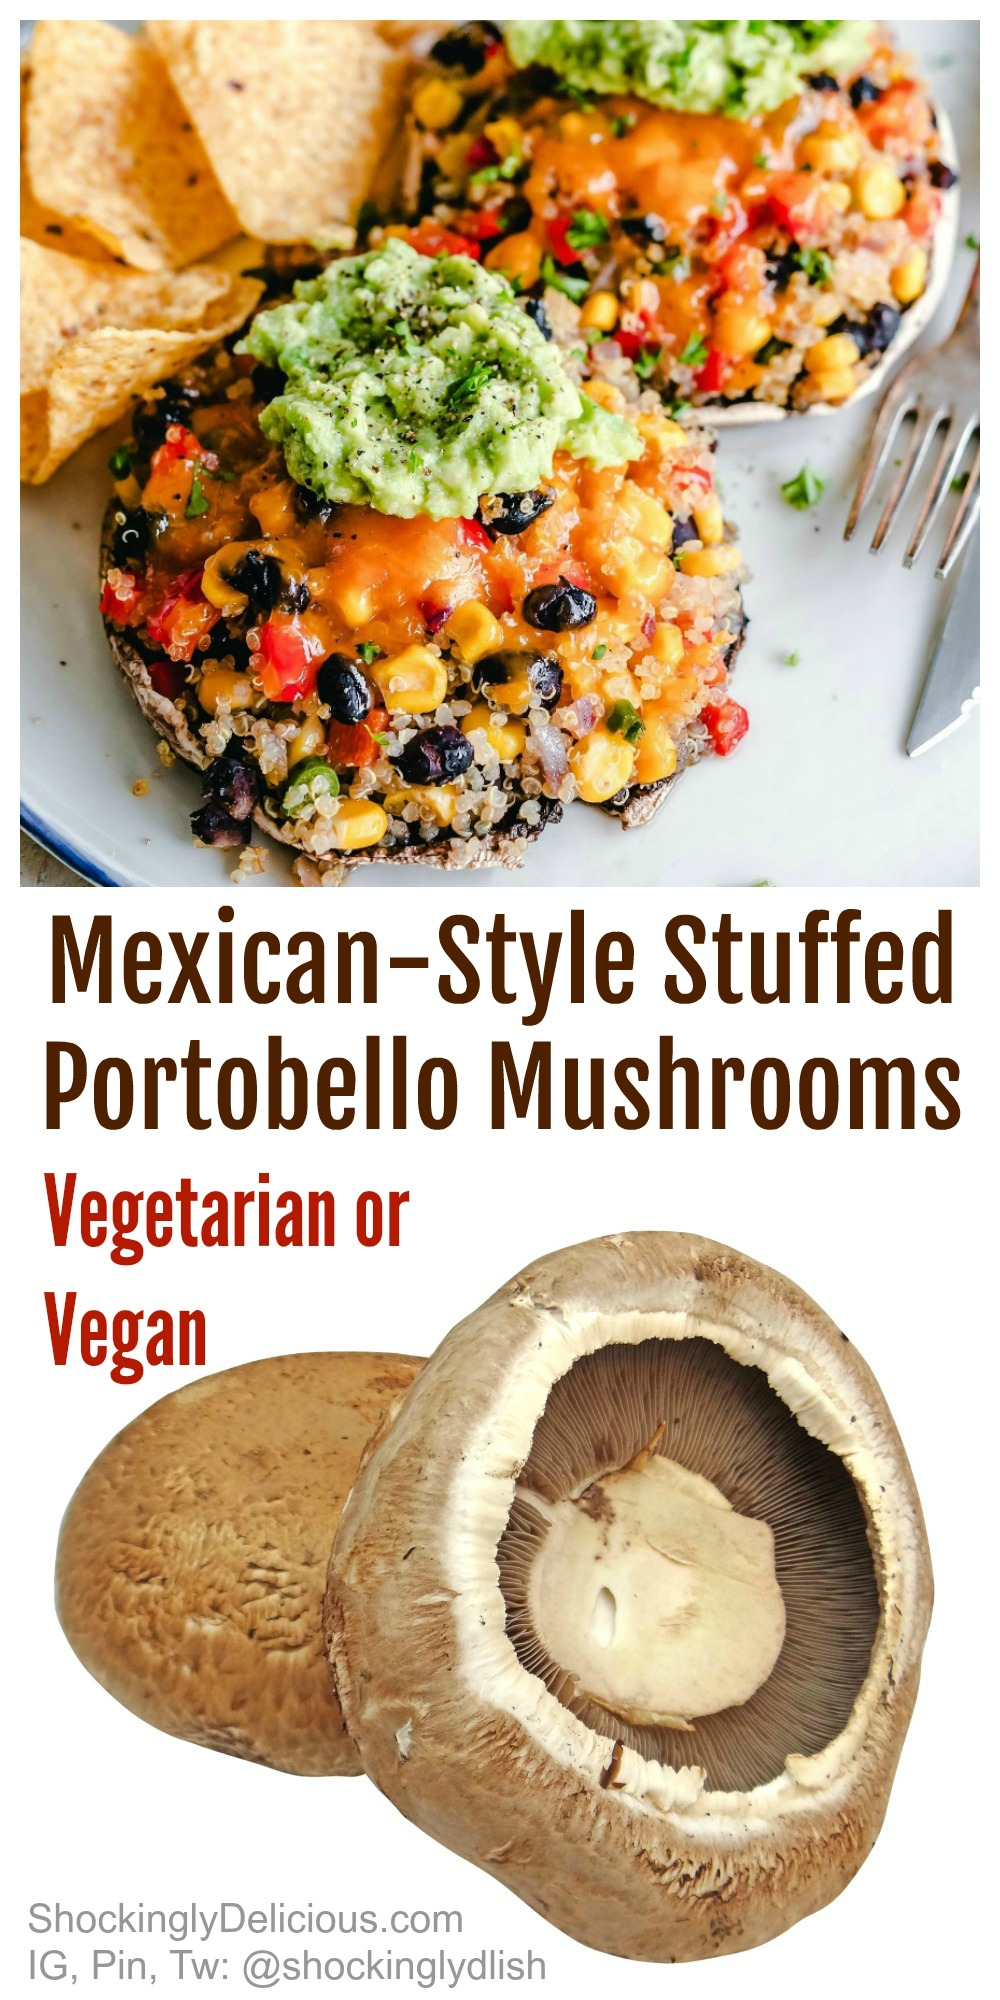 Mexican-Style Stuffed Portobello Mushrooms easy recipe on ShockinglyDelicious.com